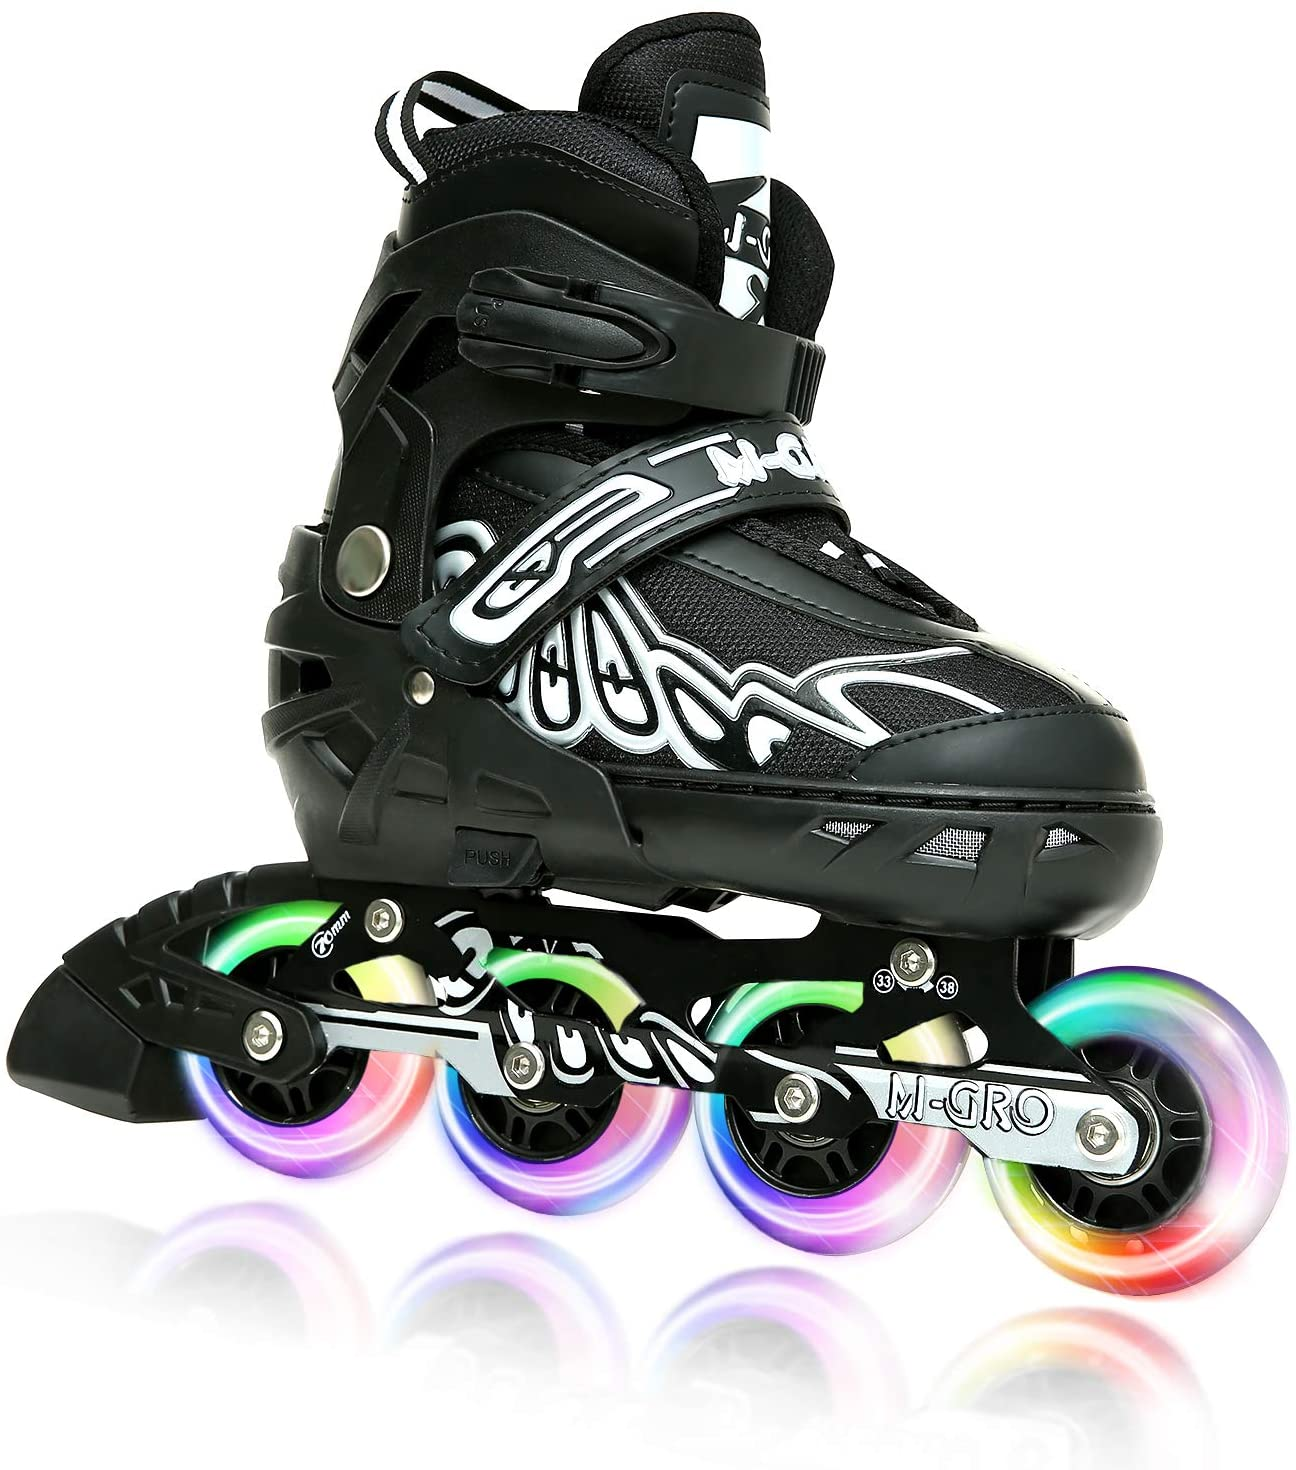 Girls M-GRO Adjustable Inline Skates for Kids and Adults with Featuring All Illuminating Wheels and Tool Outdoor Roller Skates for Women Men Boys Beginners and Professional Skaters